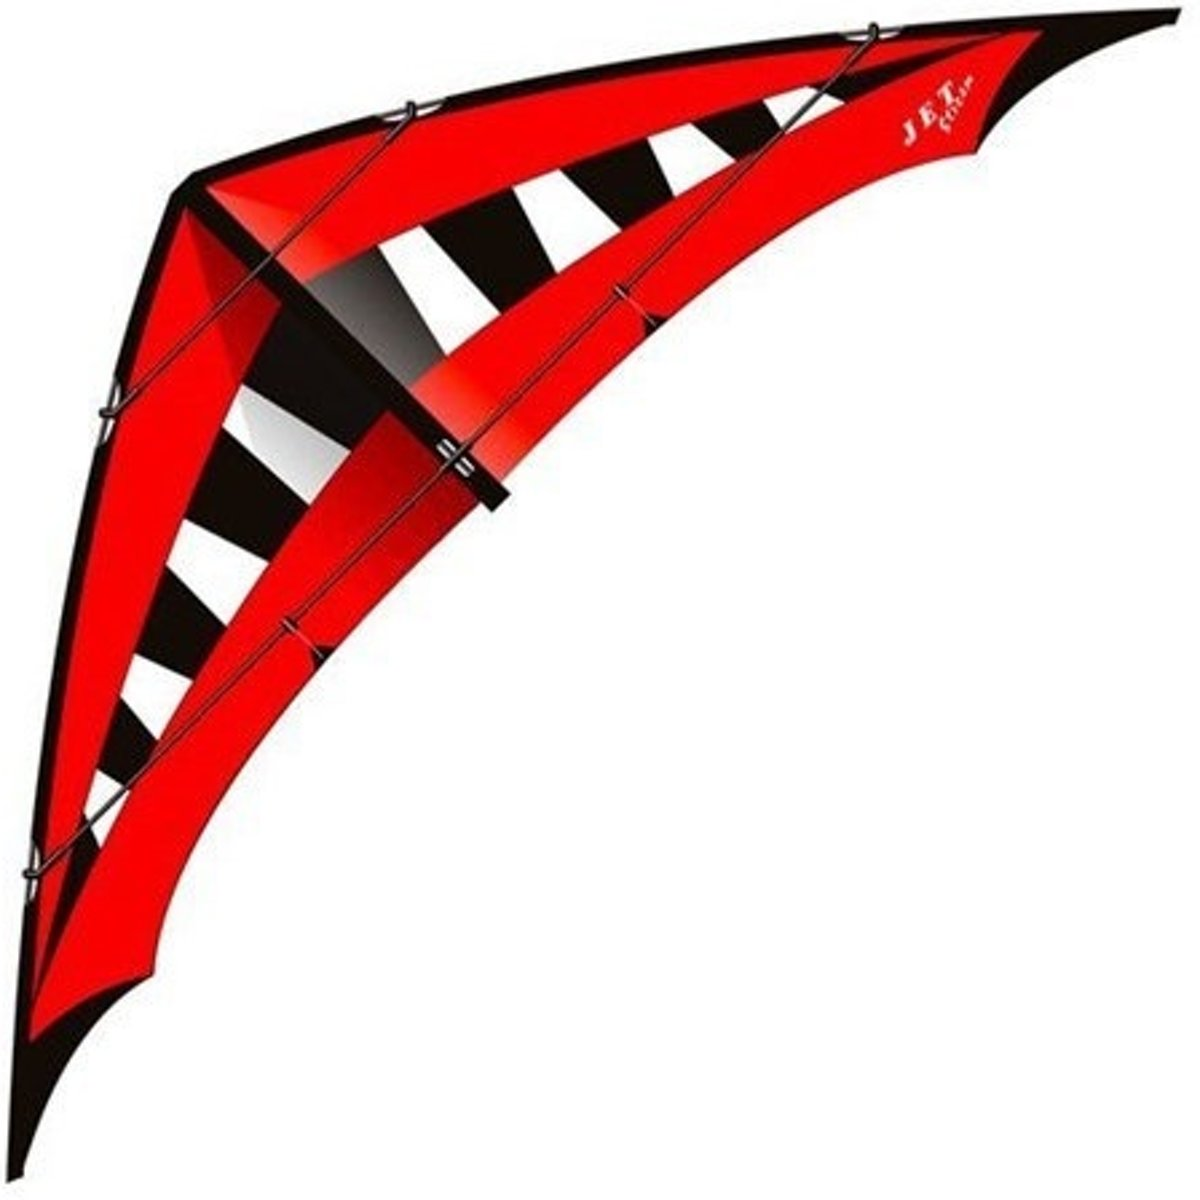 Elliot tweelijnsstuntkite Jet Stream Speed Reloaded 200 cm rood